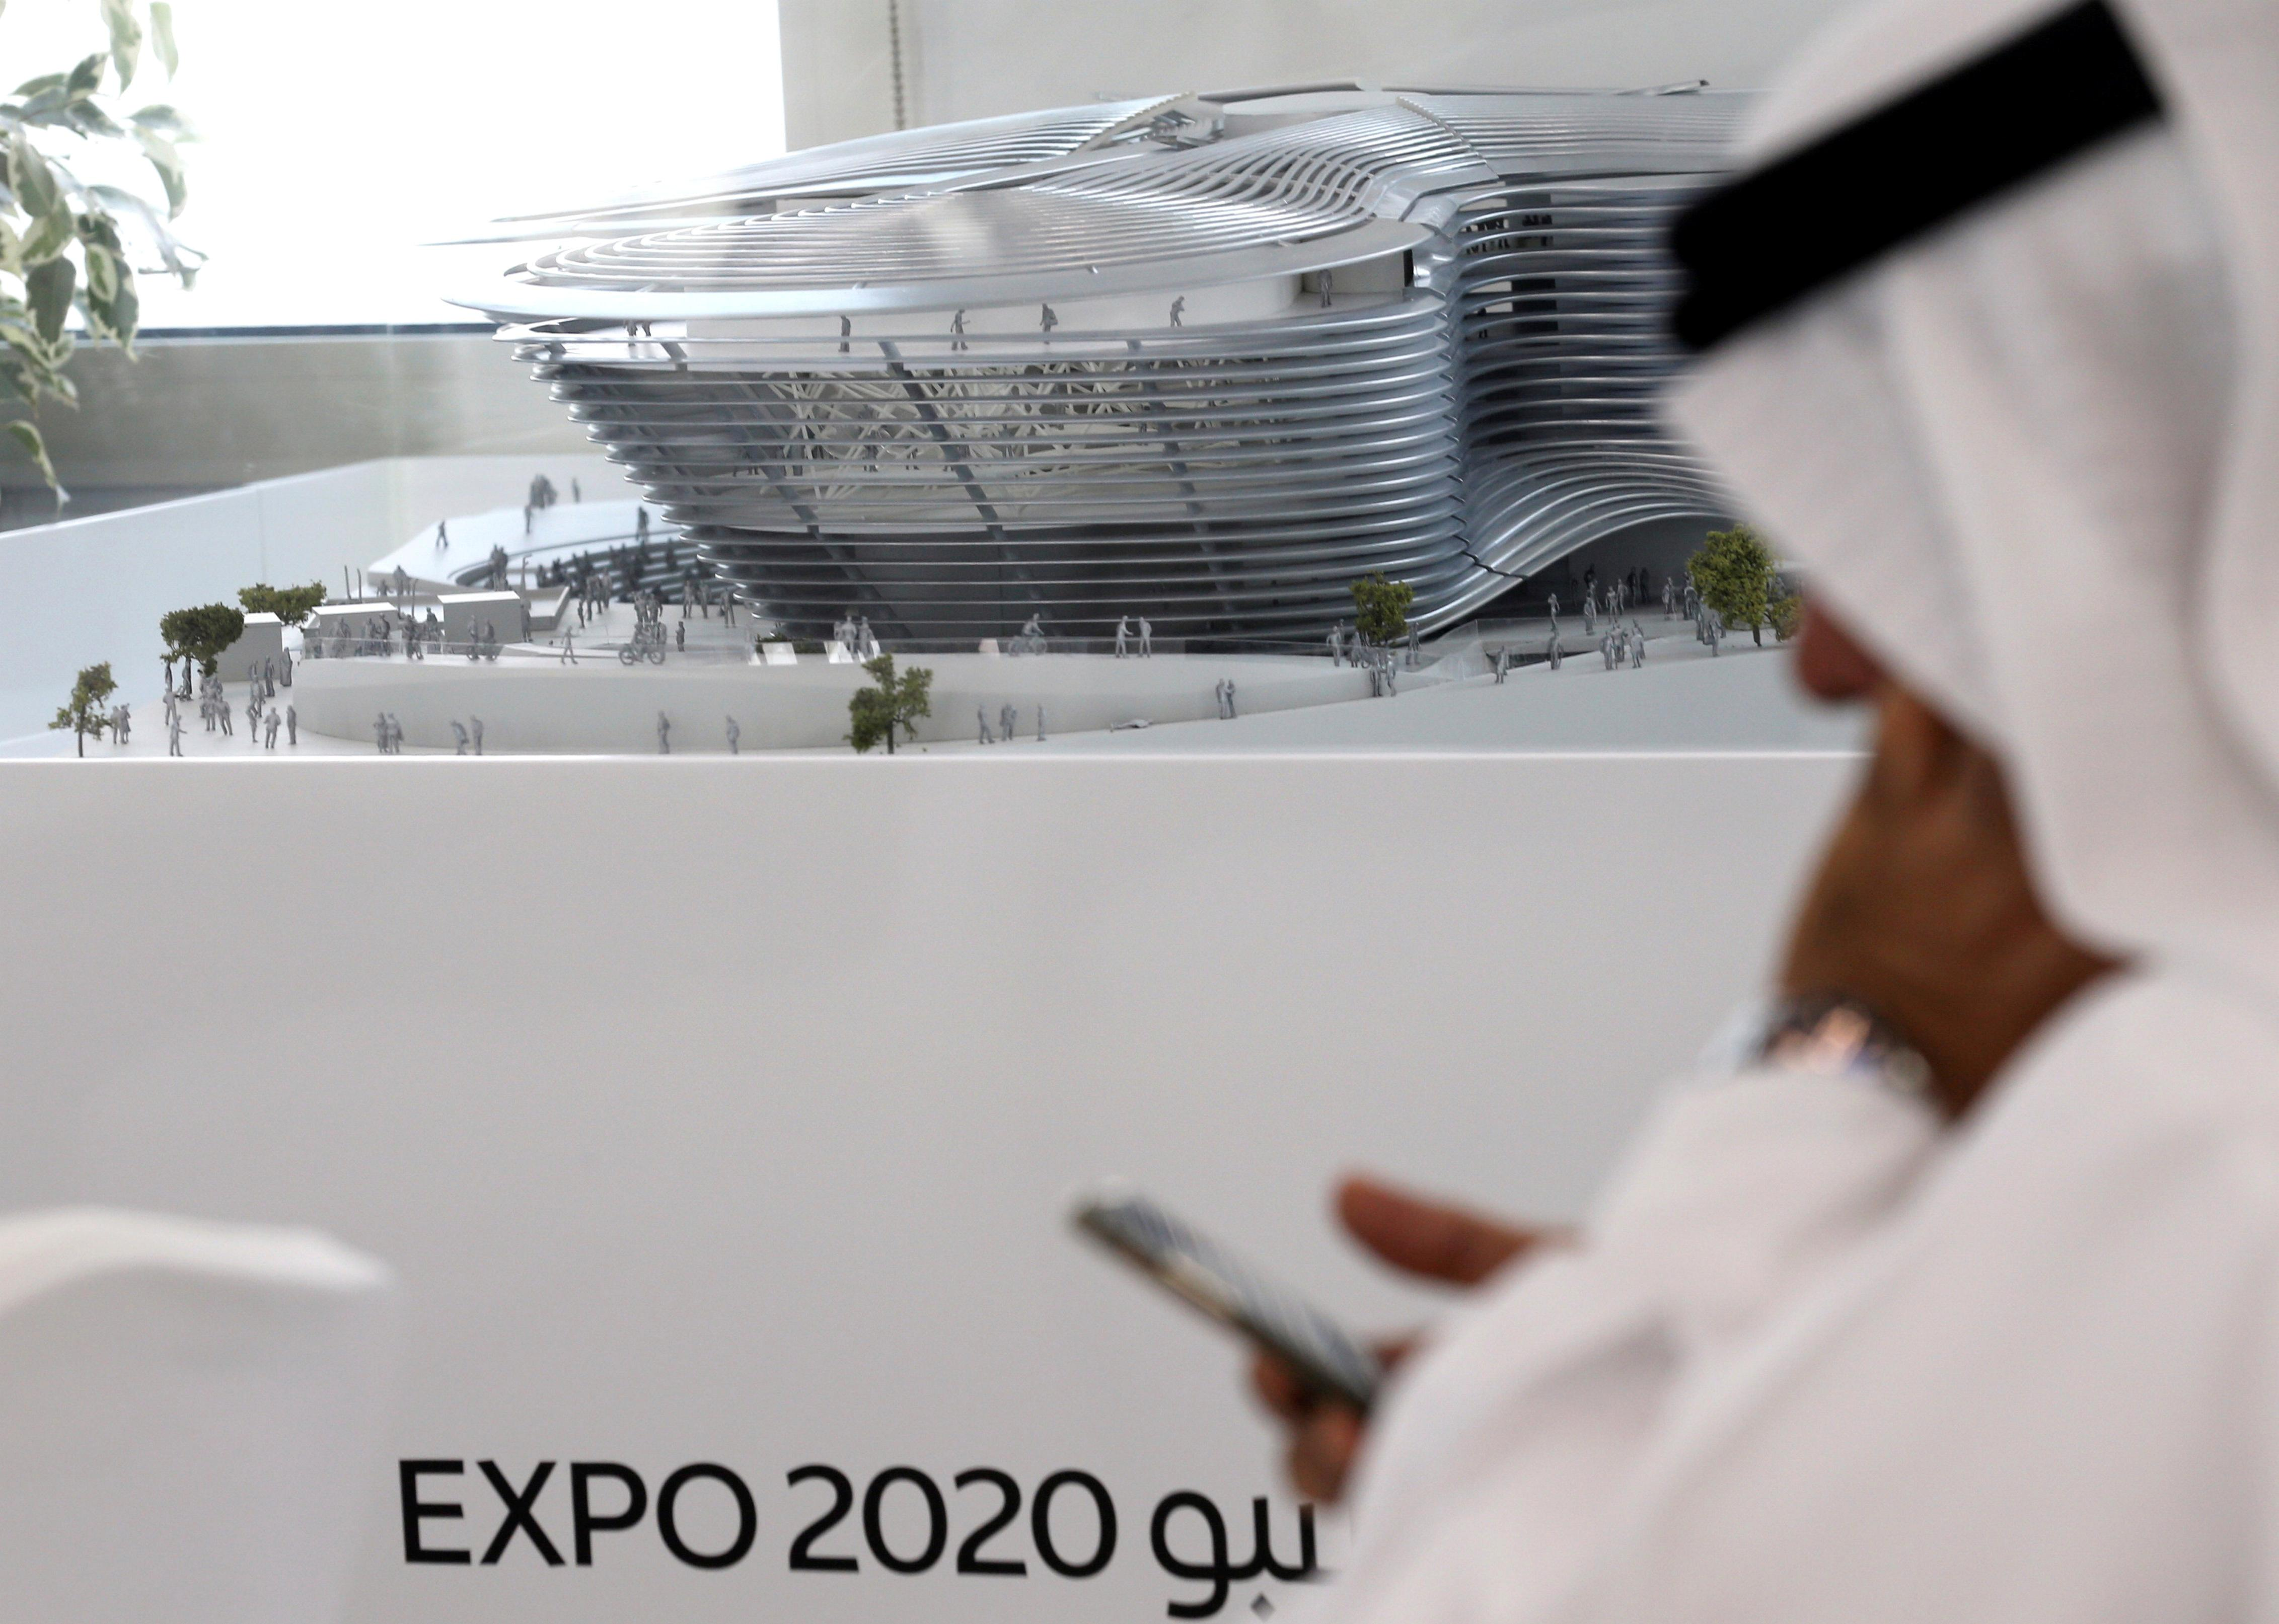 Dubai budget sets record spending to boost growth ahead of Expo 2020